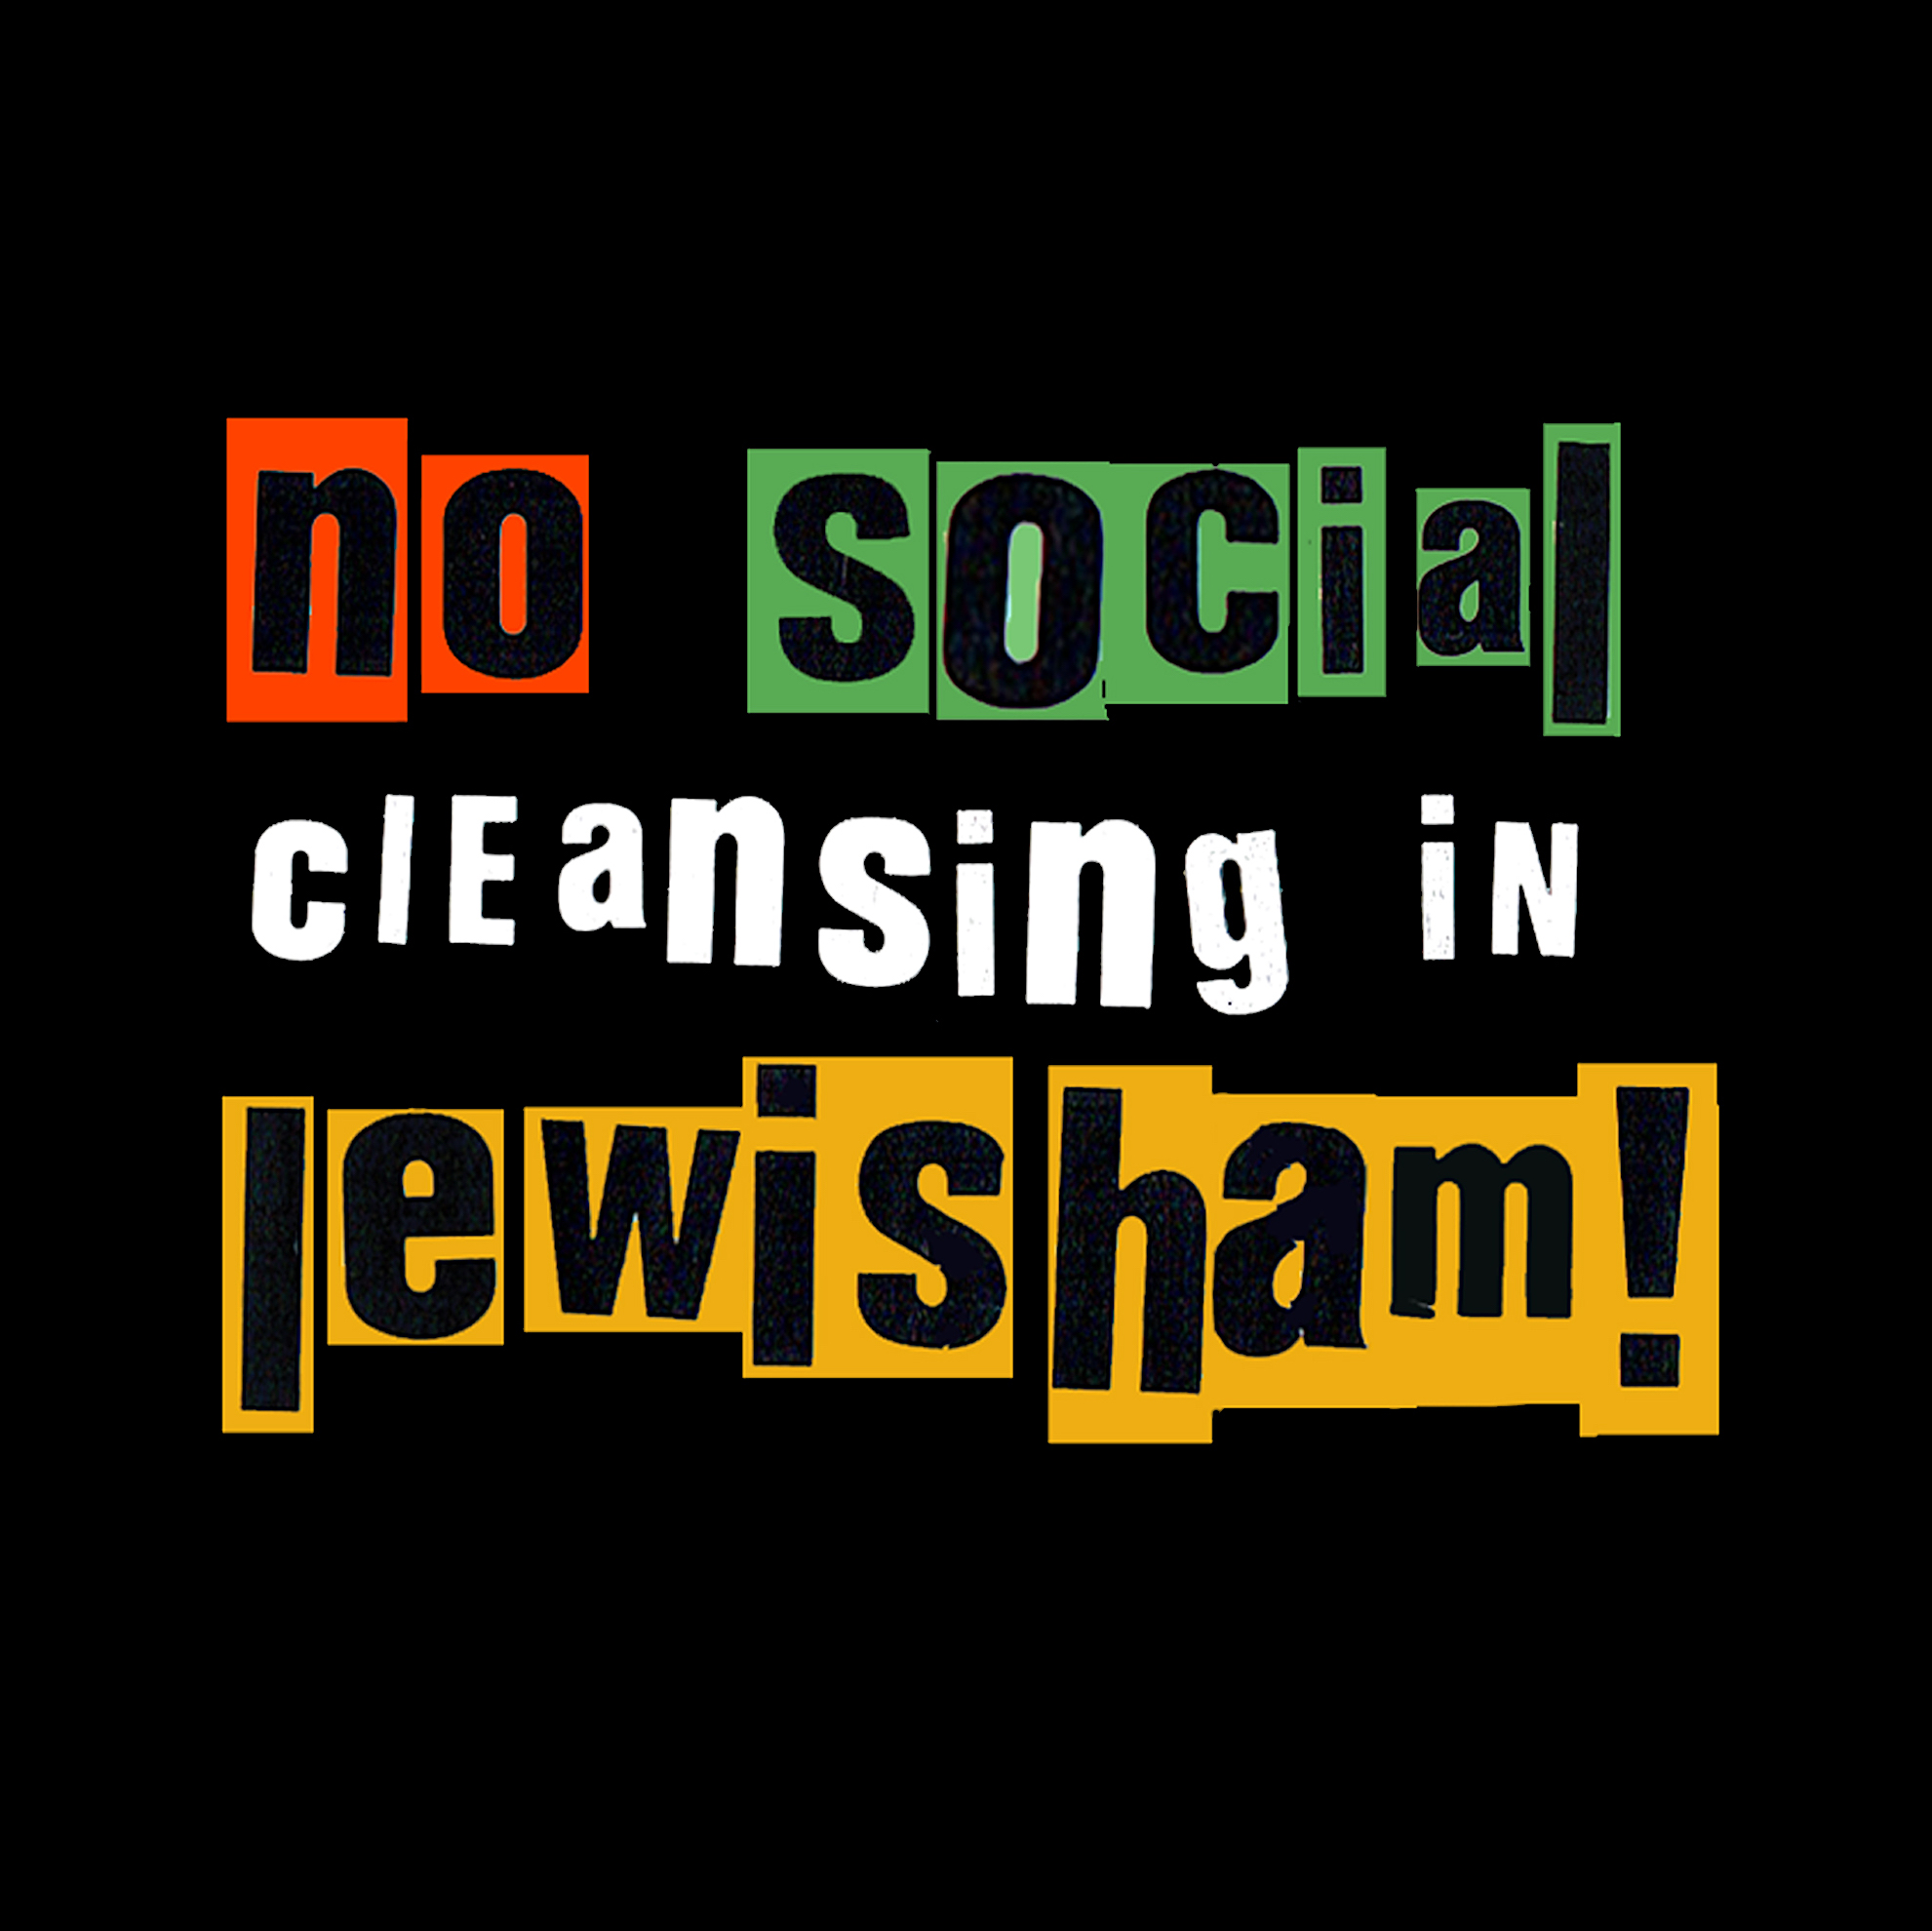 No Social Cleansing in Lewisham! A logo for the campaign made by Lilah Francis of the Achilles Street Stop and Listen Campaign.